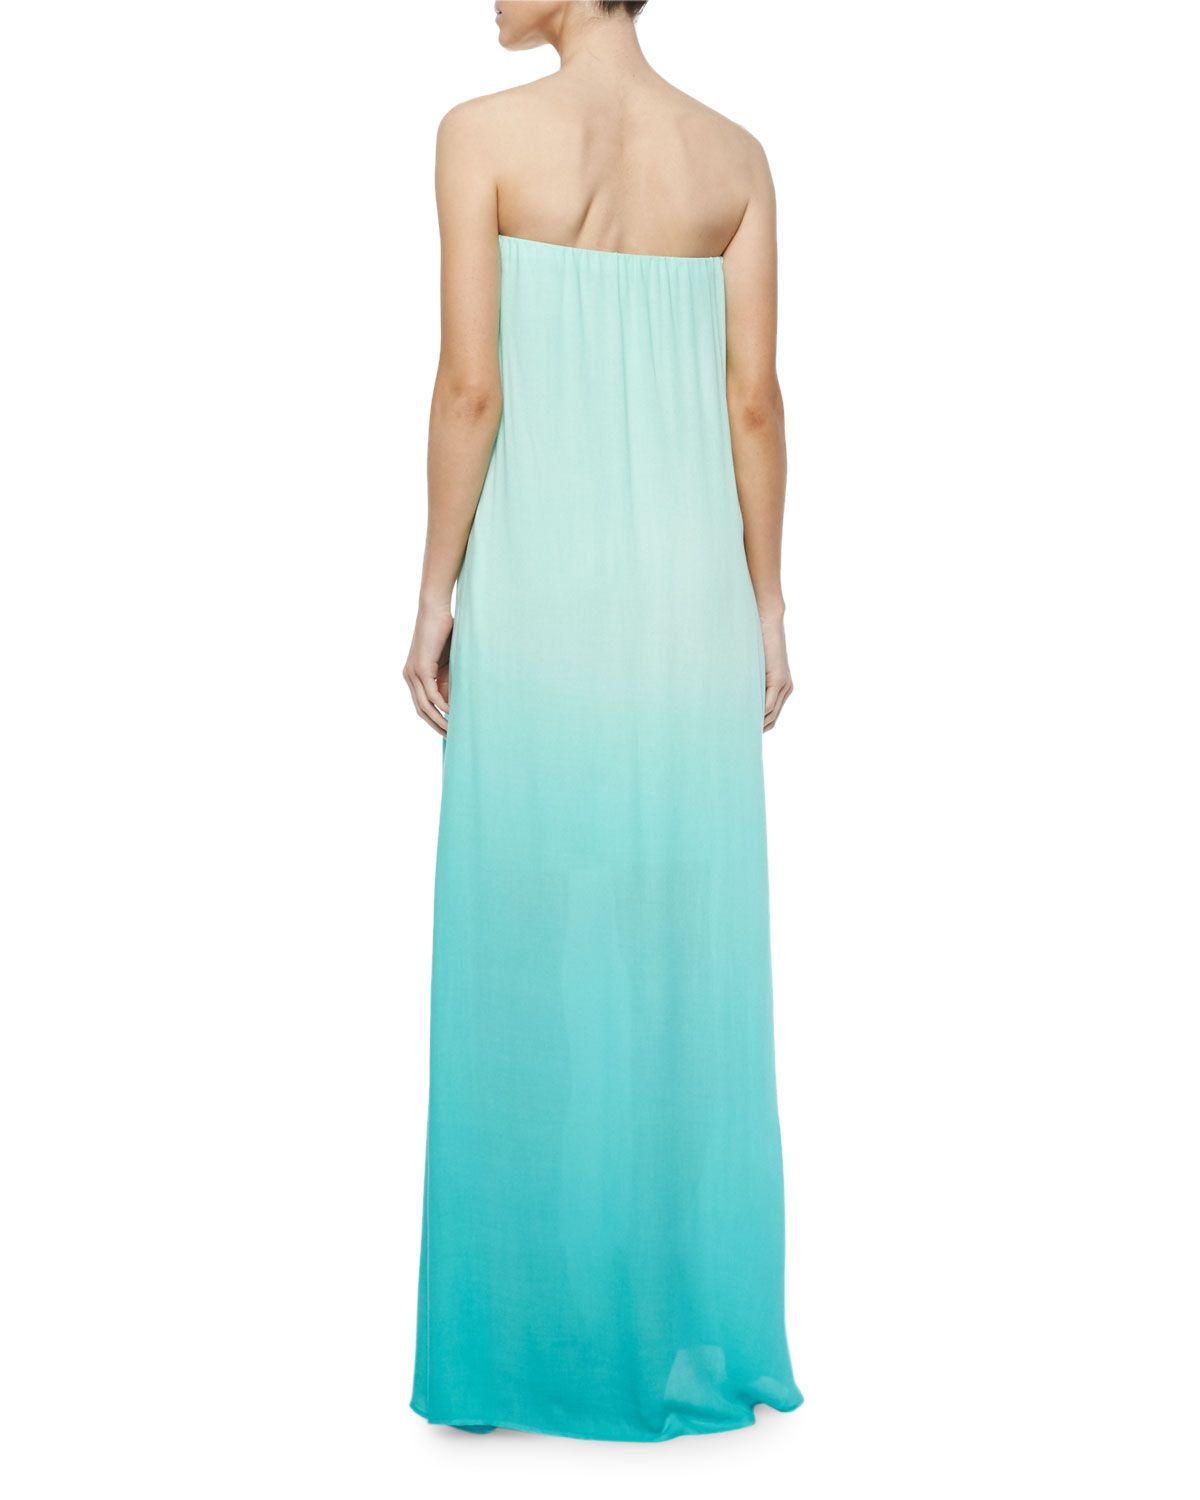 Karissa Strapless Ombre Maxi Dress, Turquoise | Products | Pinterest ...